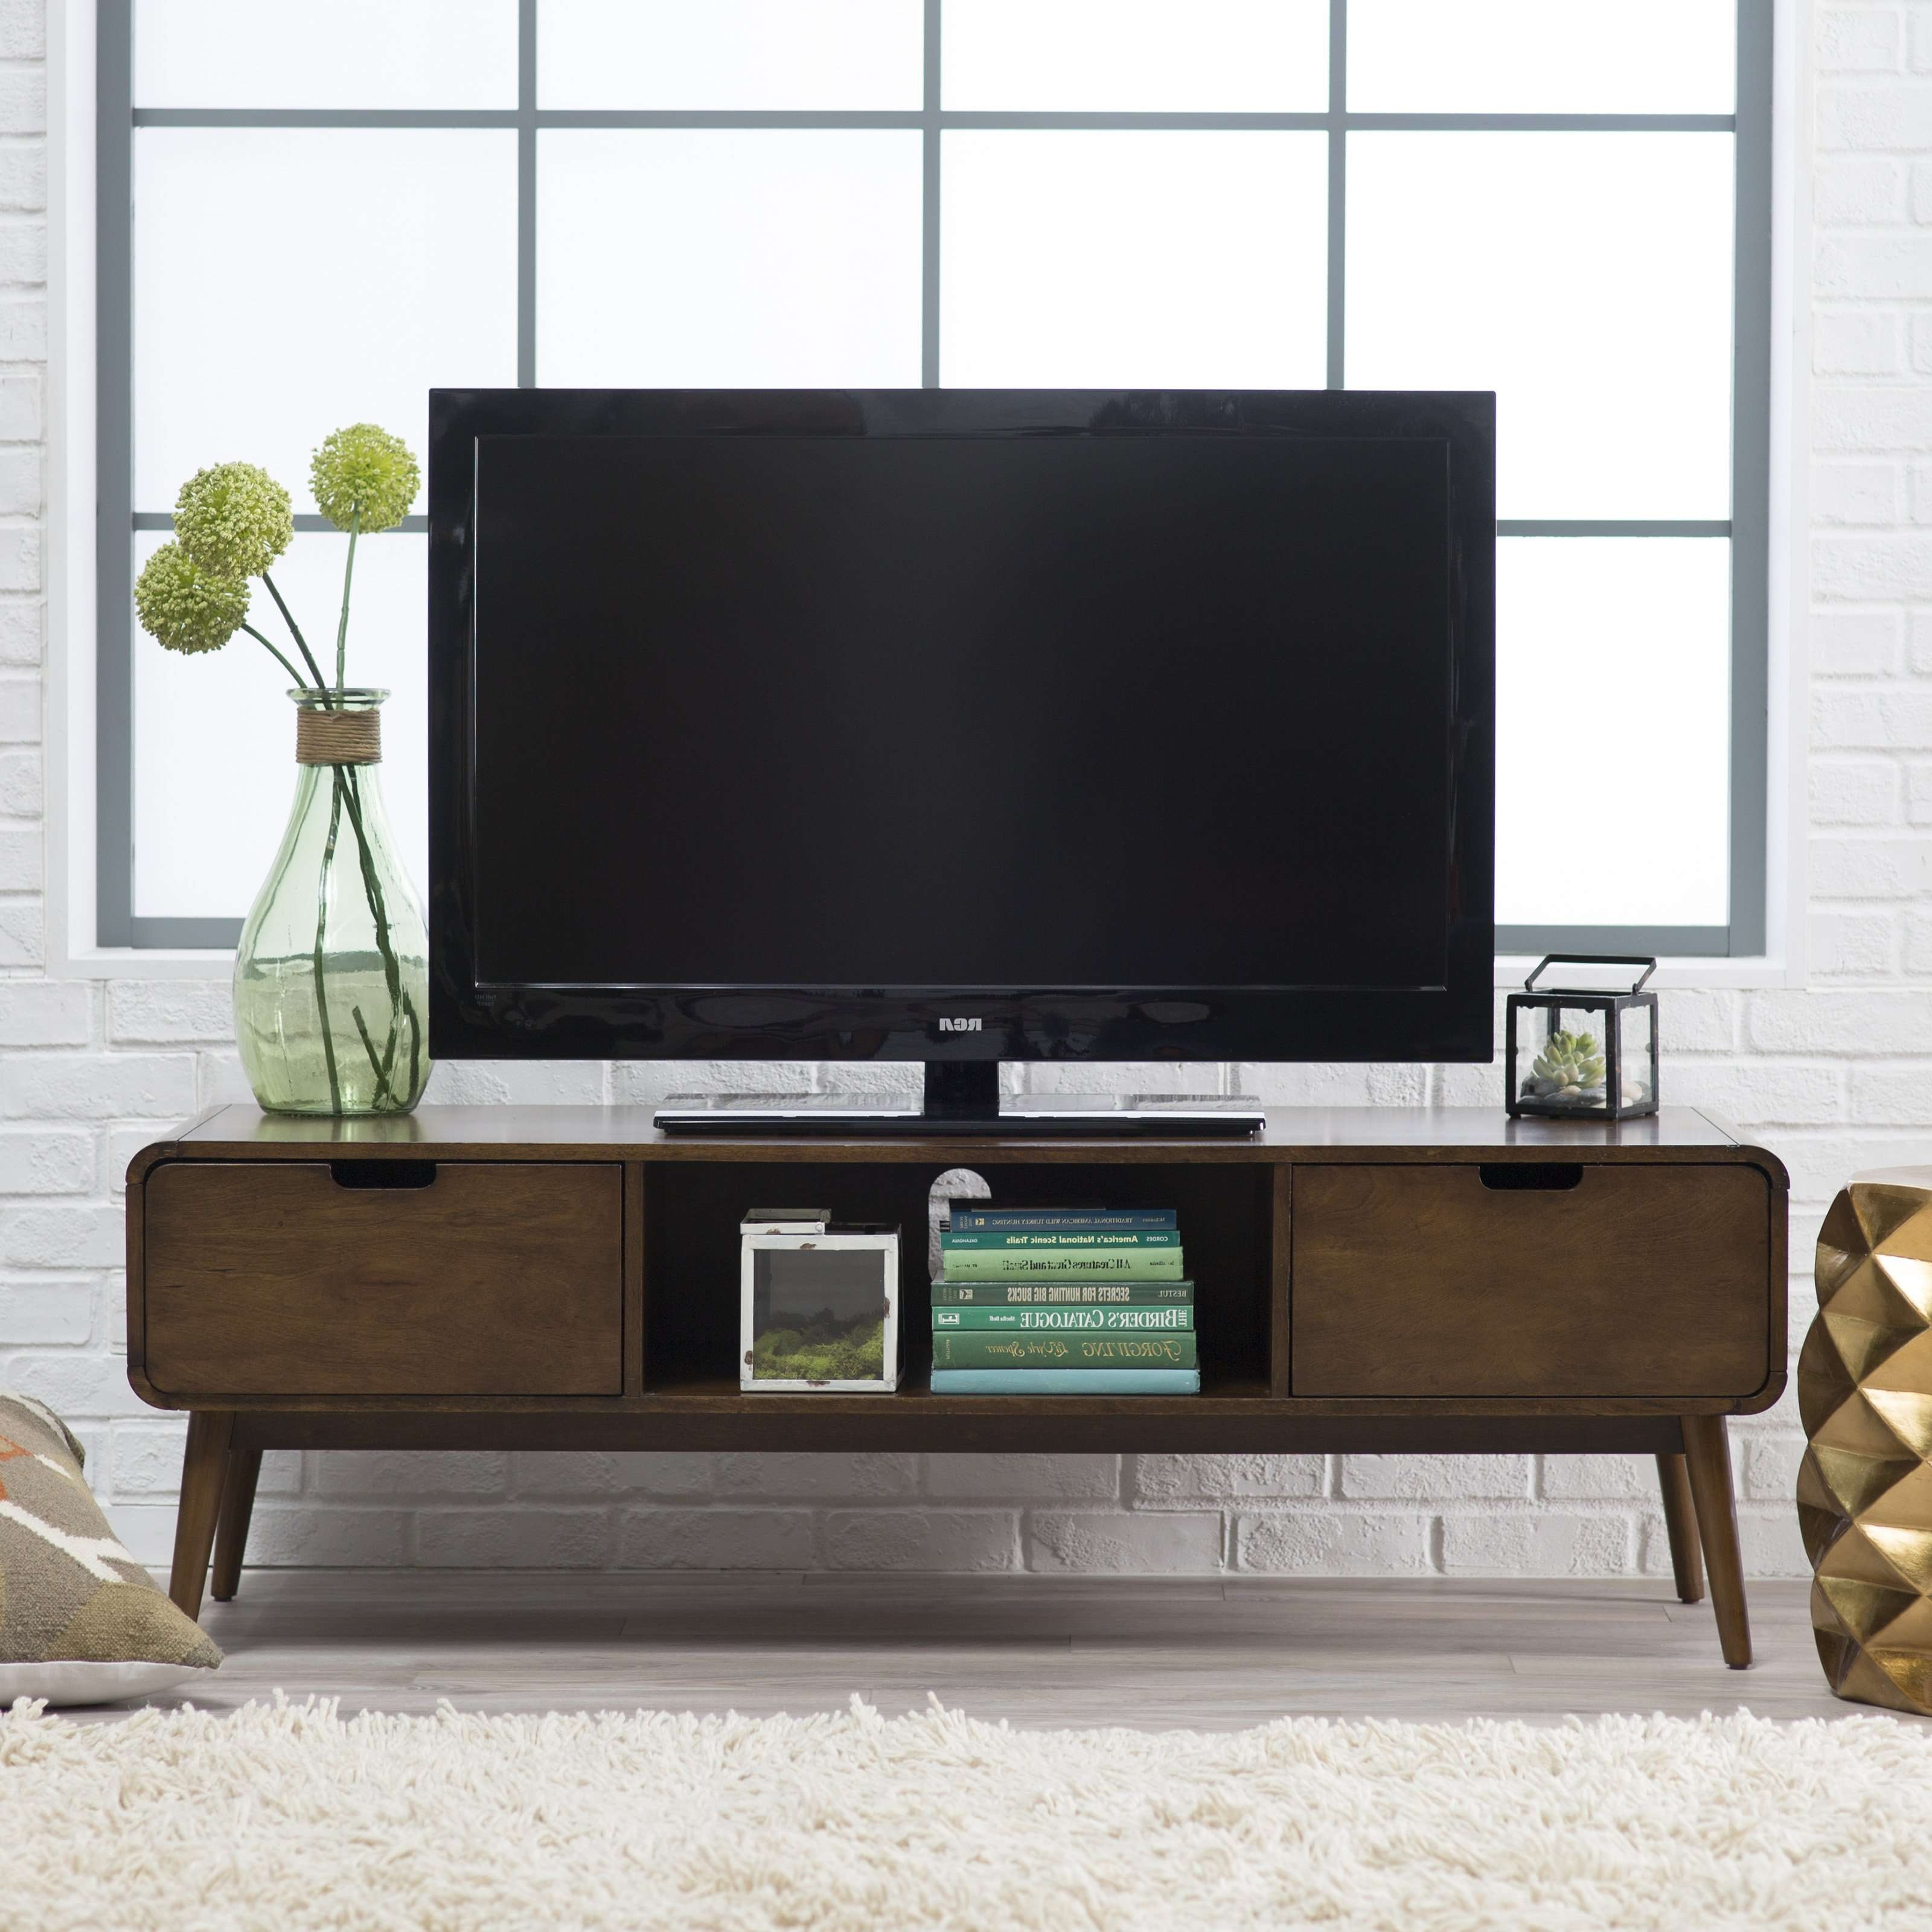 Tv : Modern Low Profile Tv Stands Amiable Modern Low Profile Tv Inside Low Profile Contemporary Tv Stands (View 2 of 20)